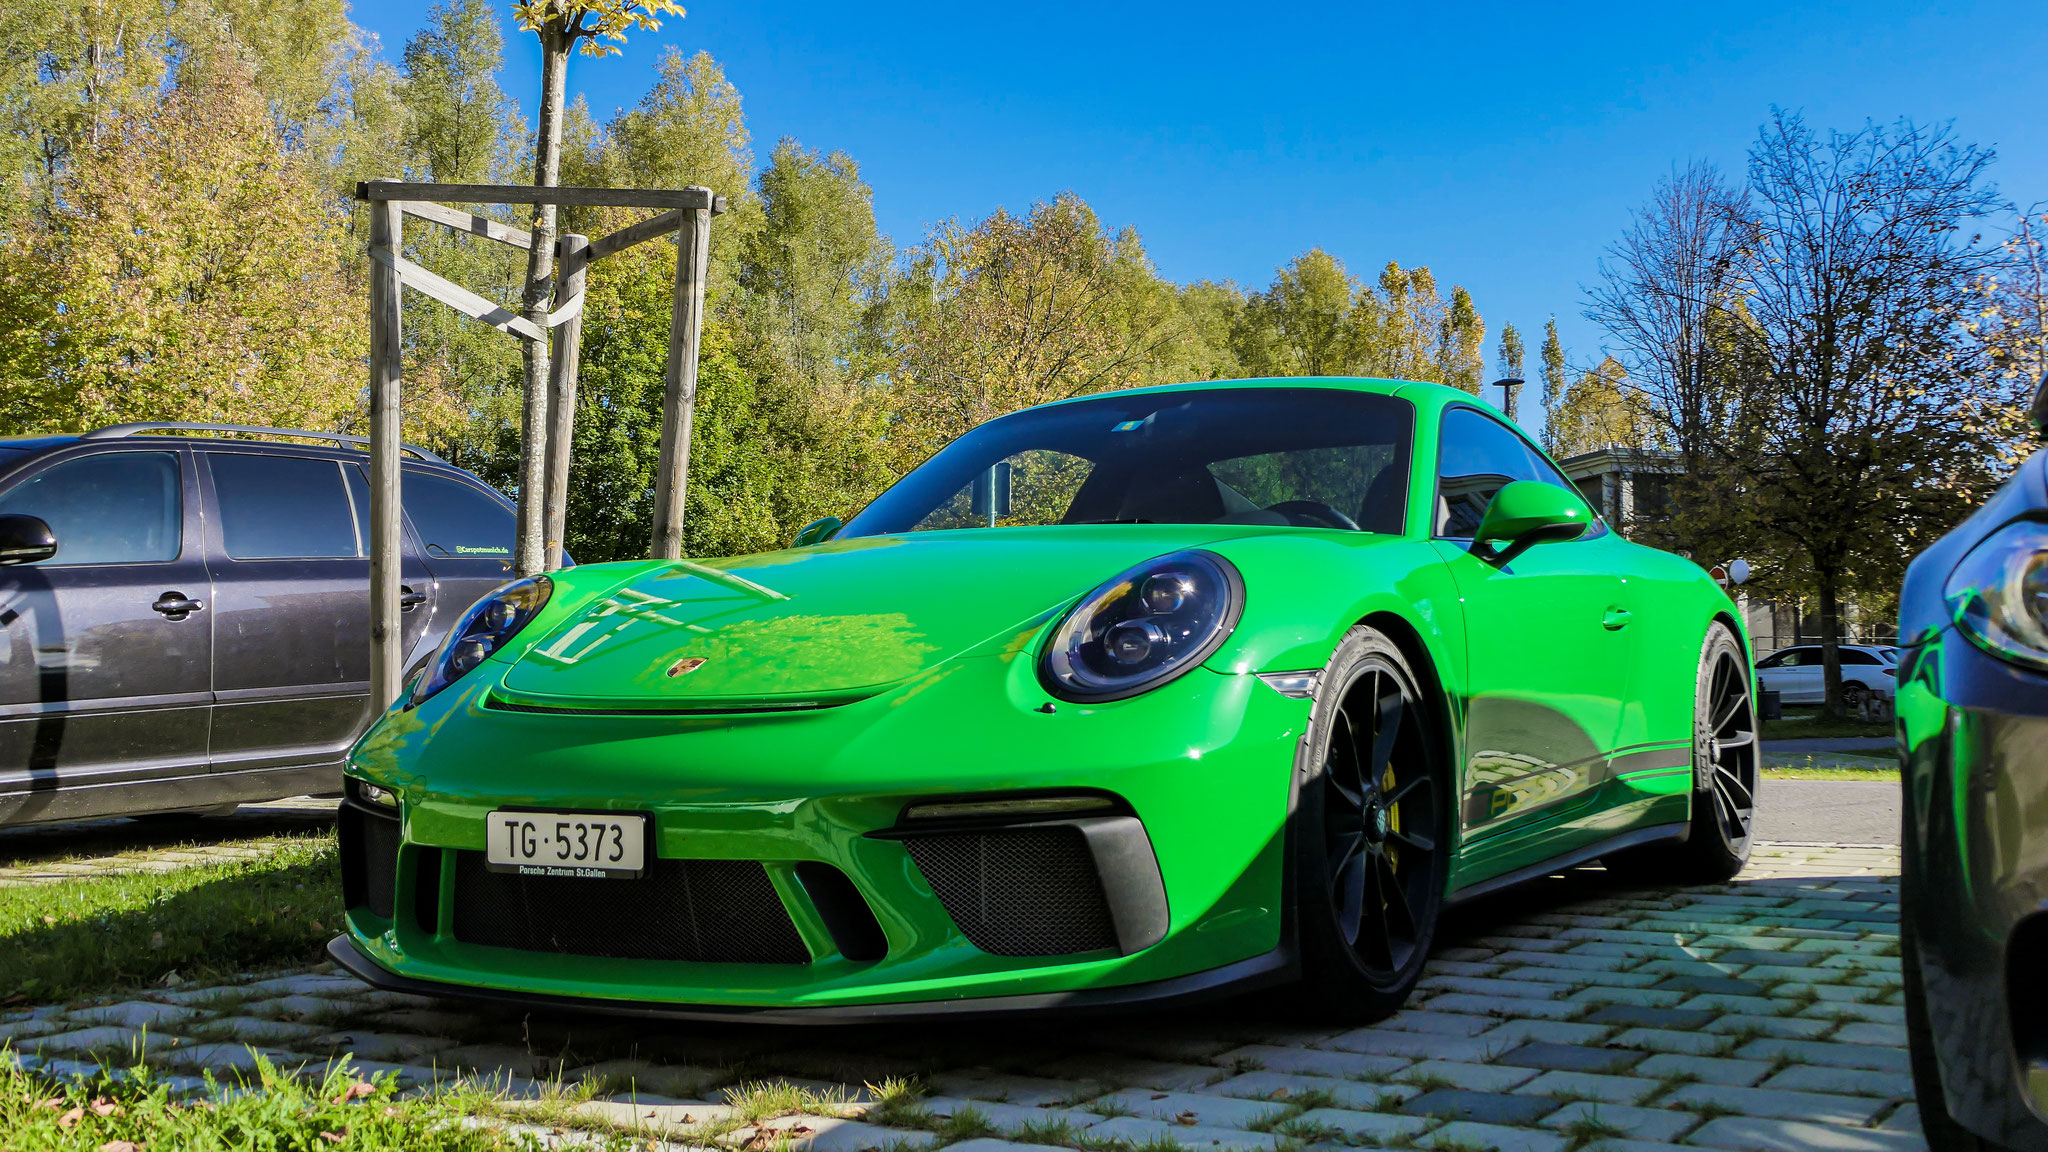 Porsche 991 GT3 Touring Package - TG-5373 (CH)